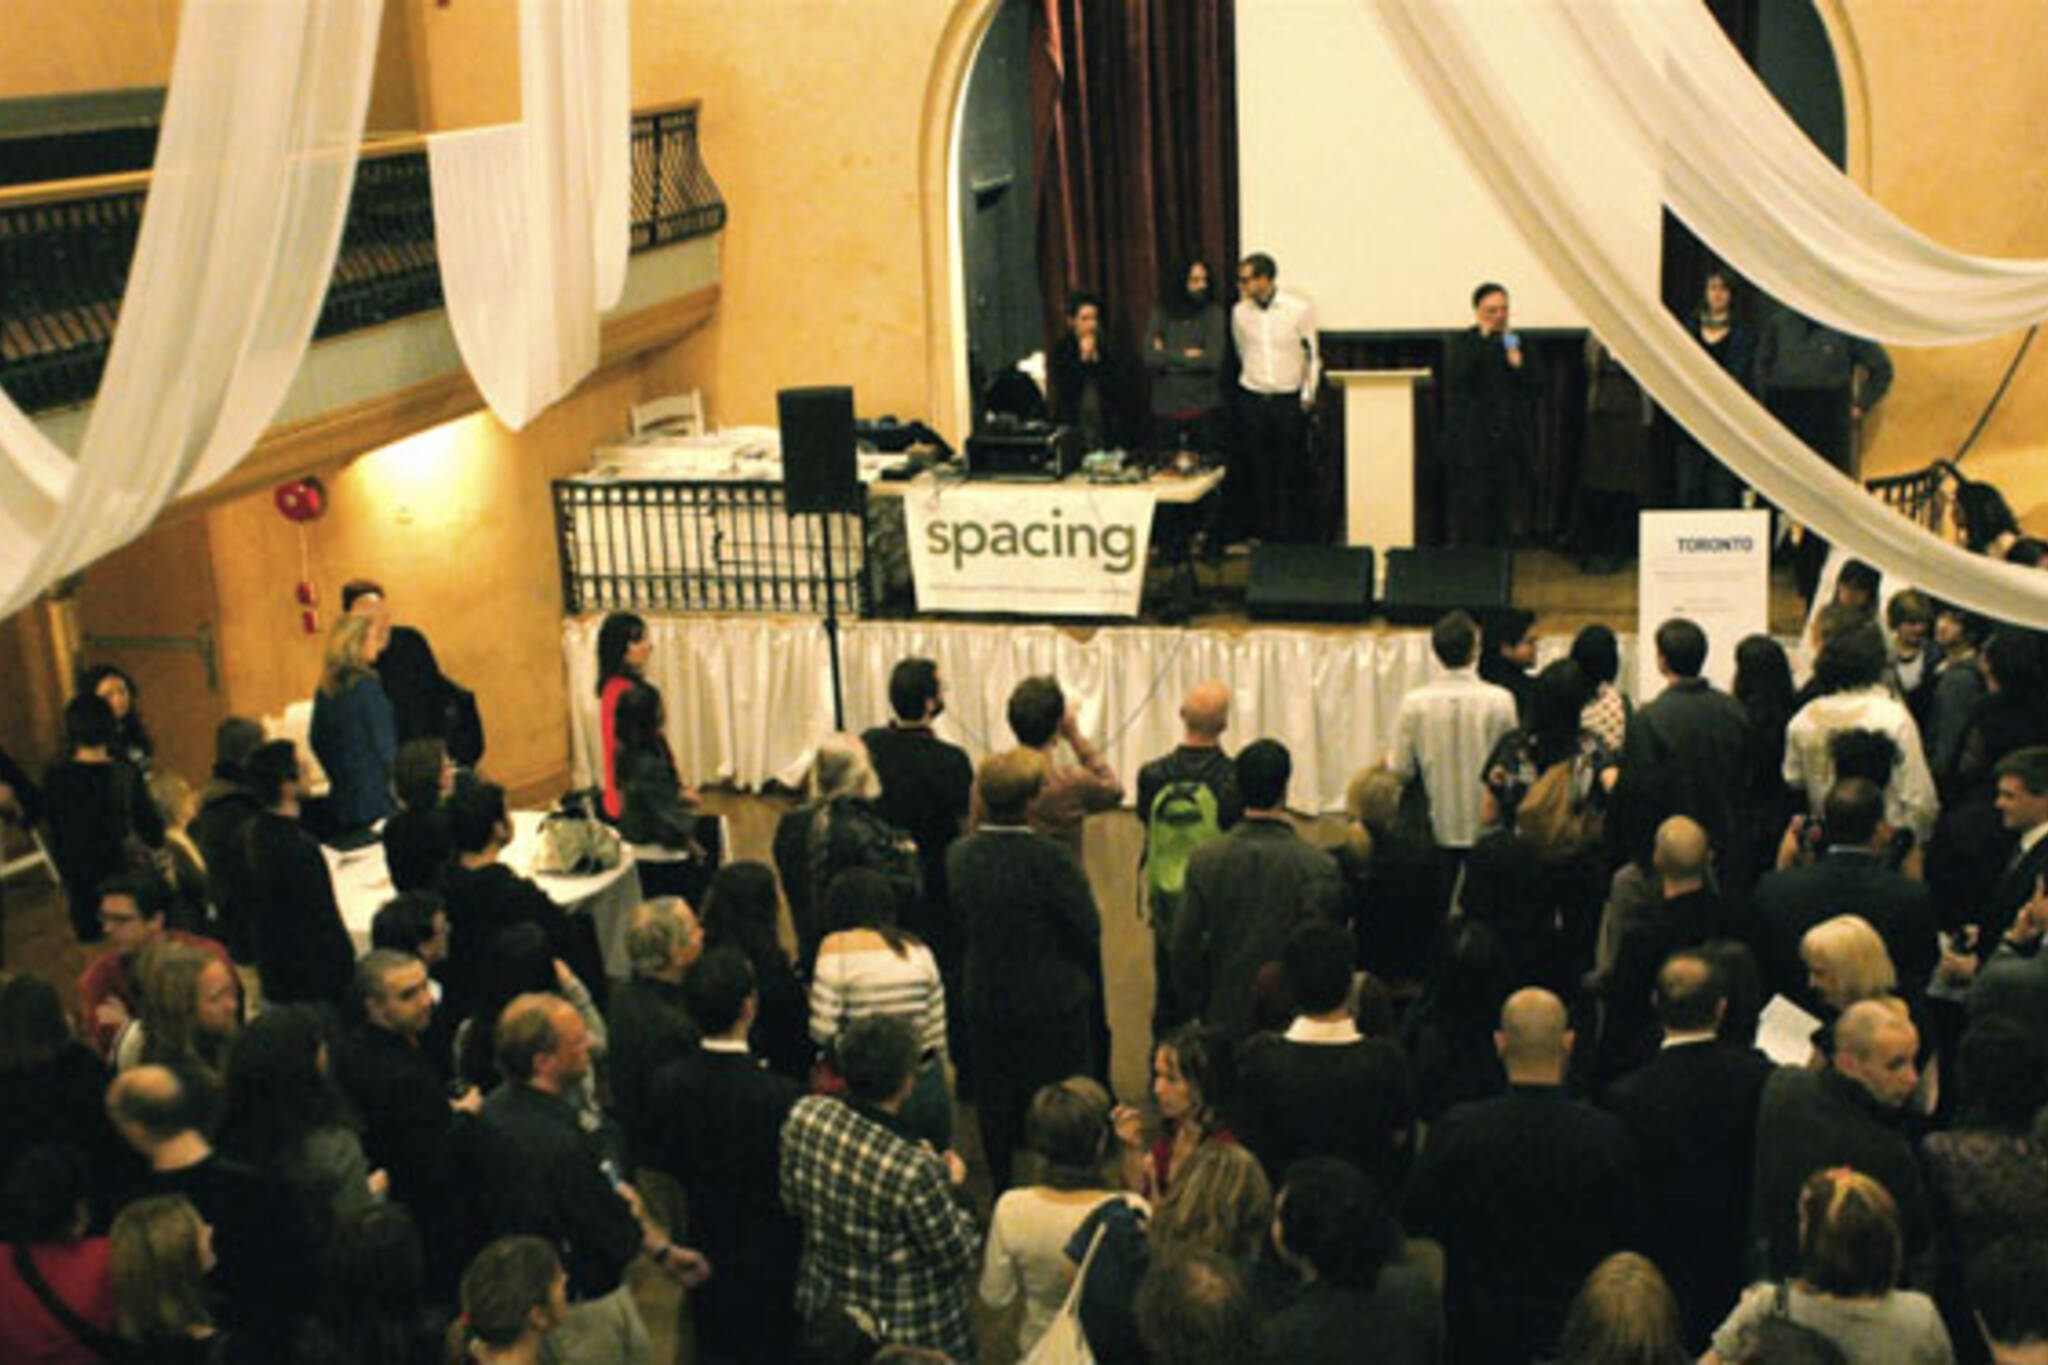 Spacing Magazine had a party at The Great Hall on Queen St. W. to celebrate the Toronto-based publication's fifth anniversary